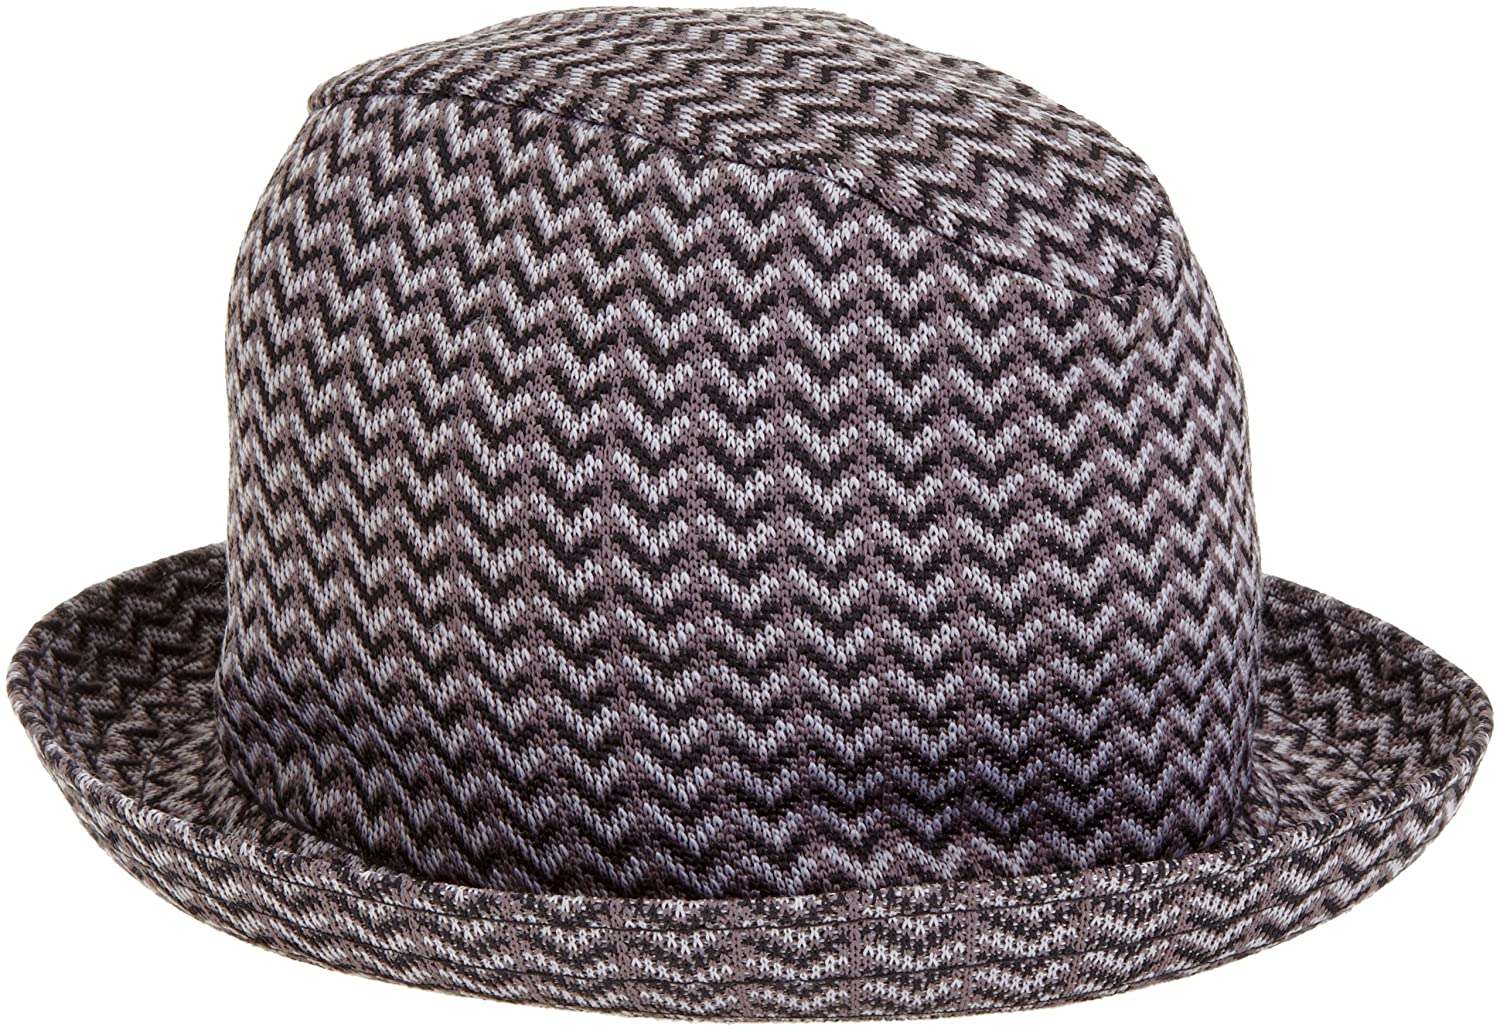 ead186e5c Kangol Jacquard Player Trilby Hat K0242CO Tropic Fedora Style with ...